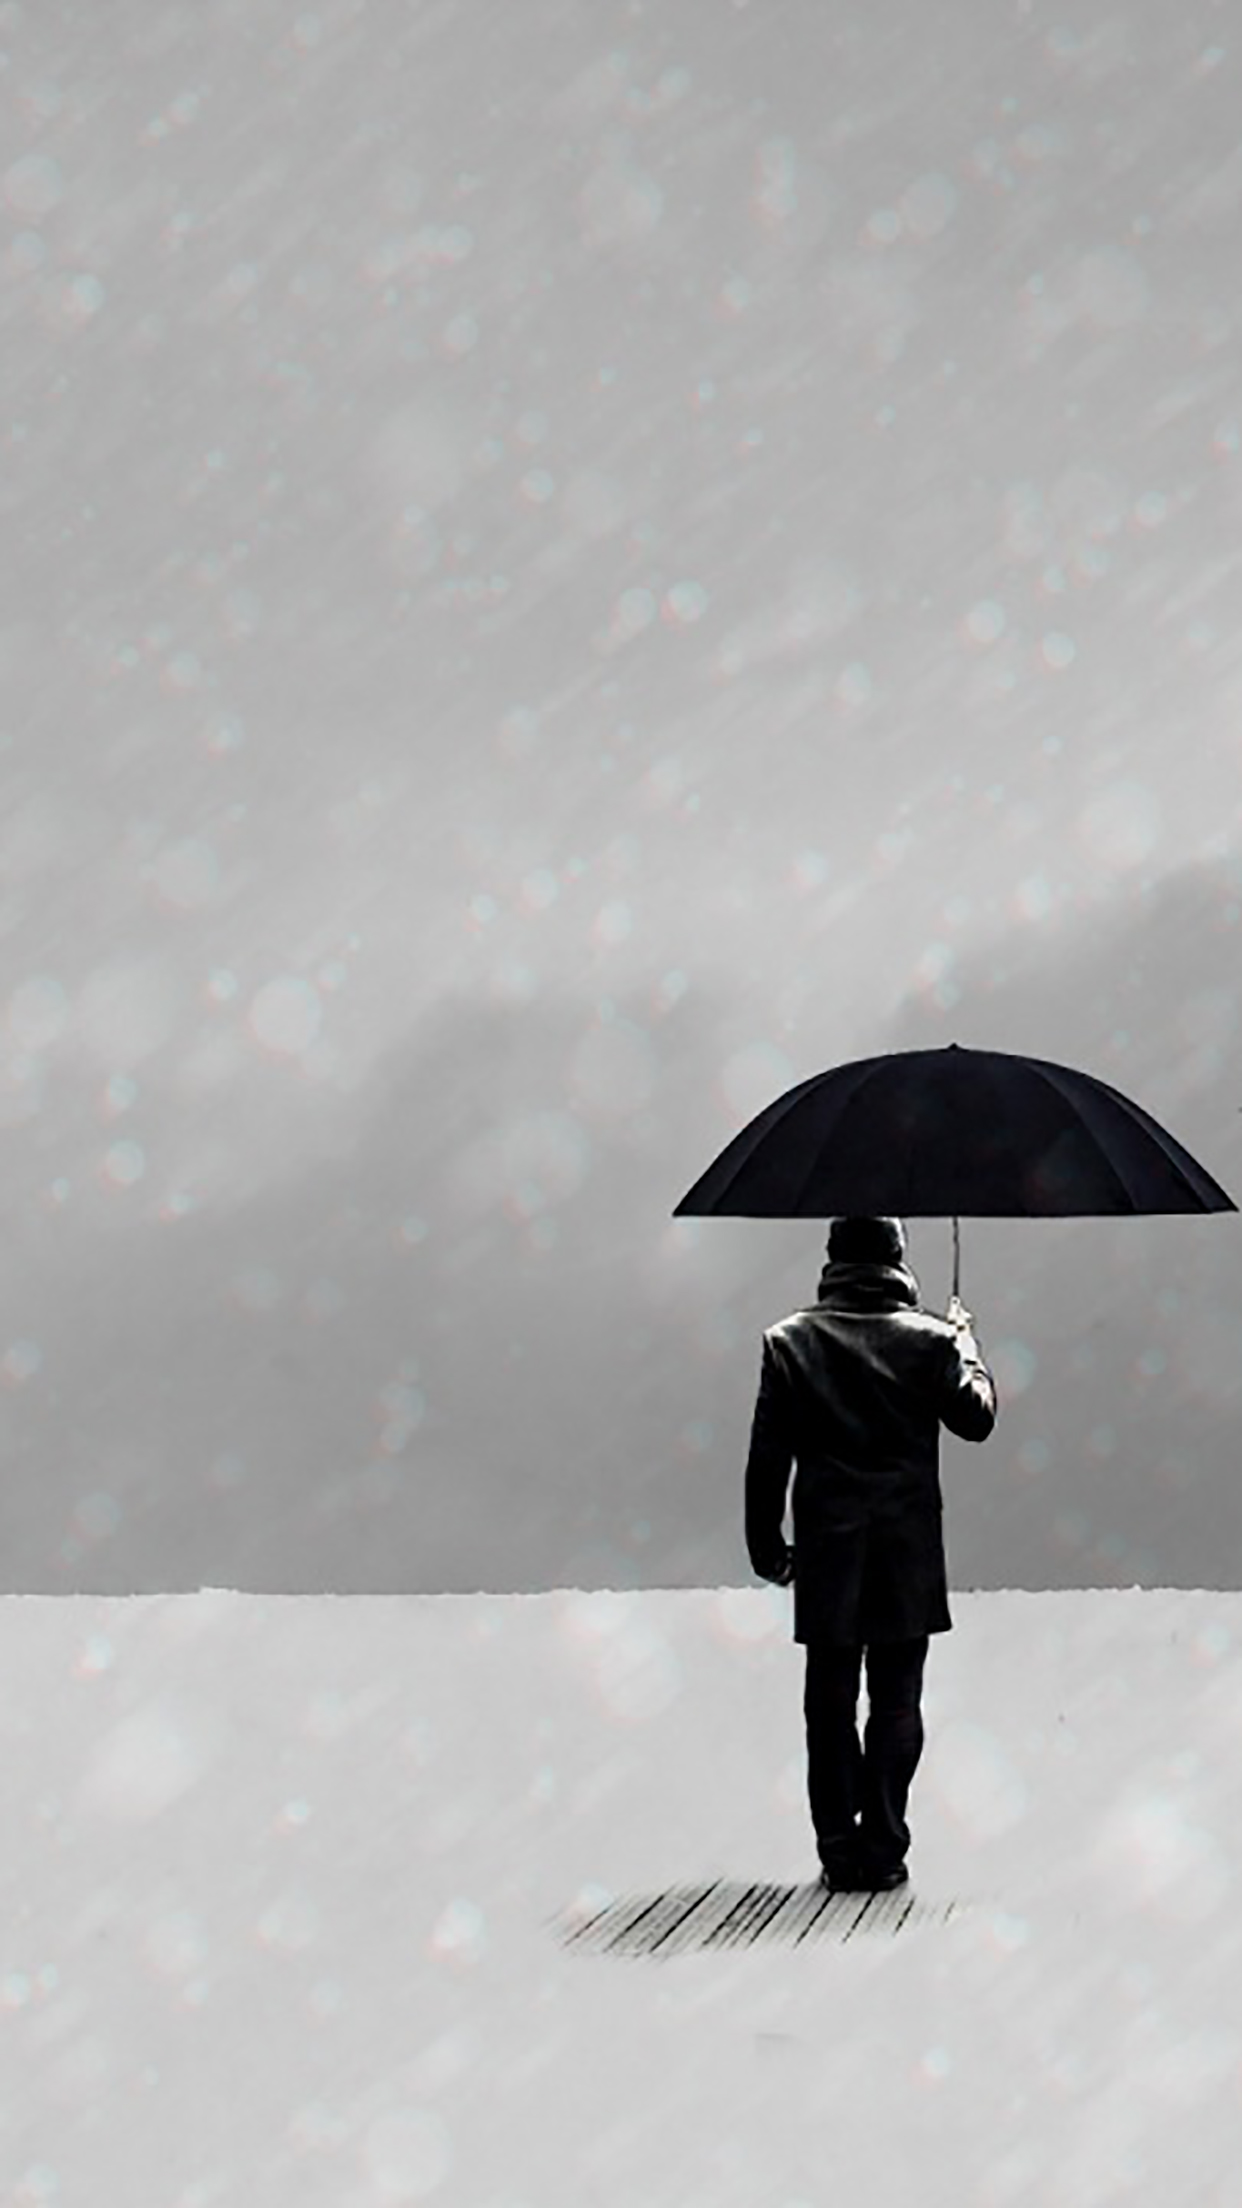 Umbrella Man Standing 3Wallpapers iPhone Parallax Les 3Wallpapers iPhone du jour (13/01/2017)